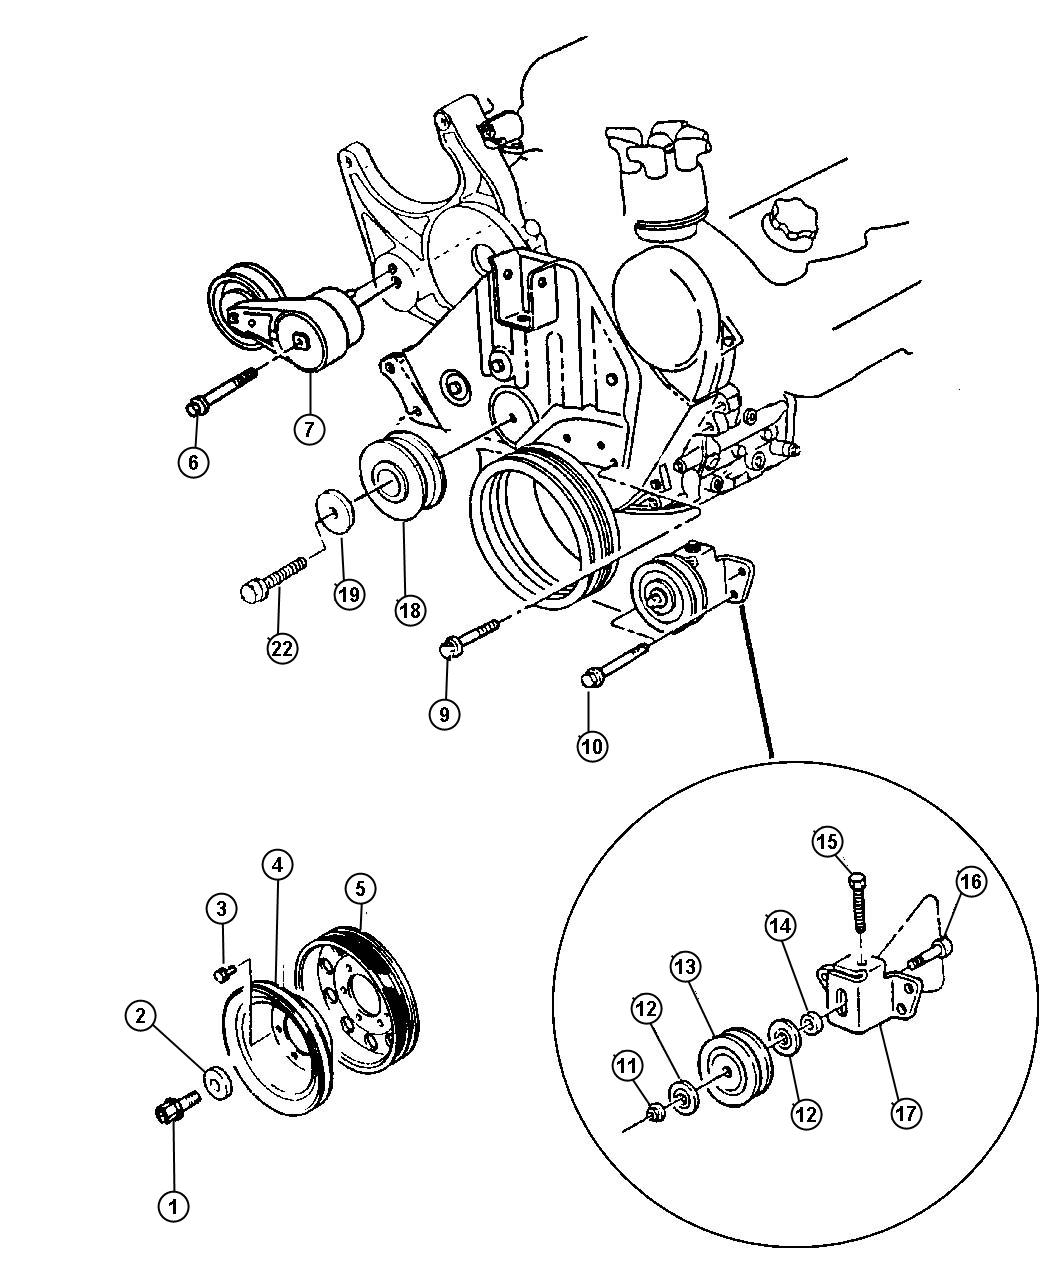 Plymouth Grand Voyager Shield. Pulley. Tensioner, snow